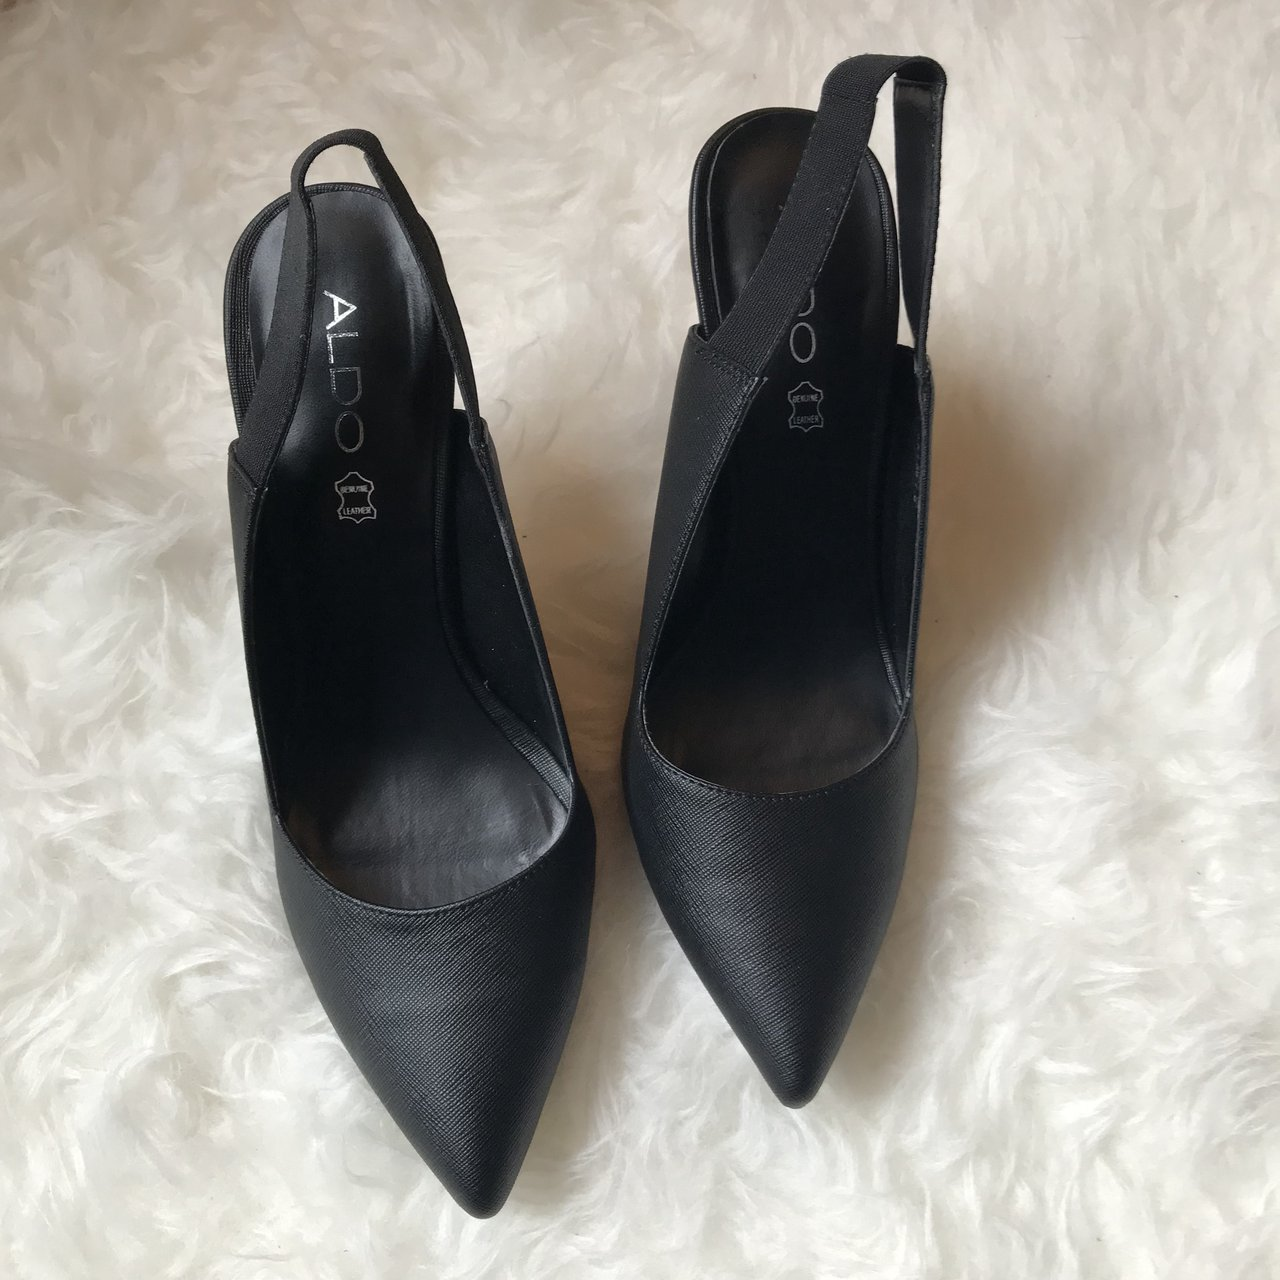 968f0f5ba0a9  nissa907. in 15 hours. United States. Black Aldo sling back